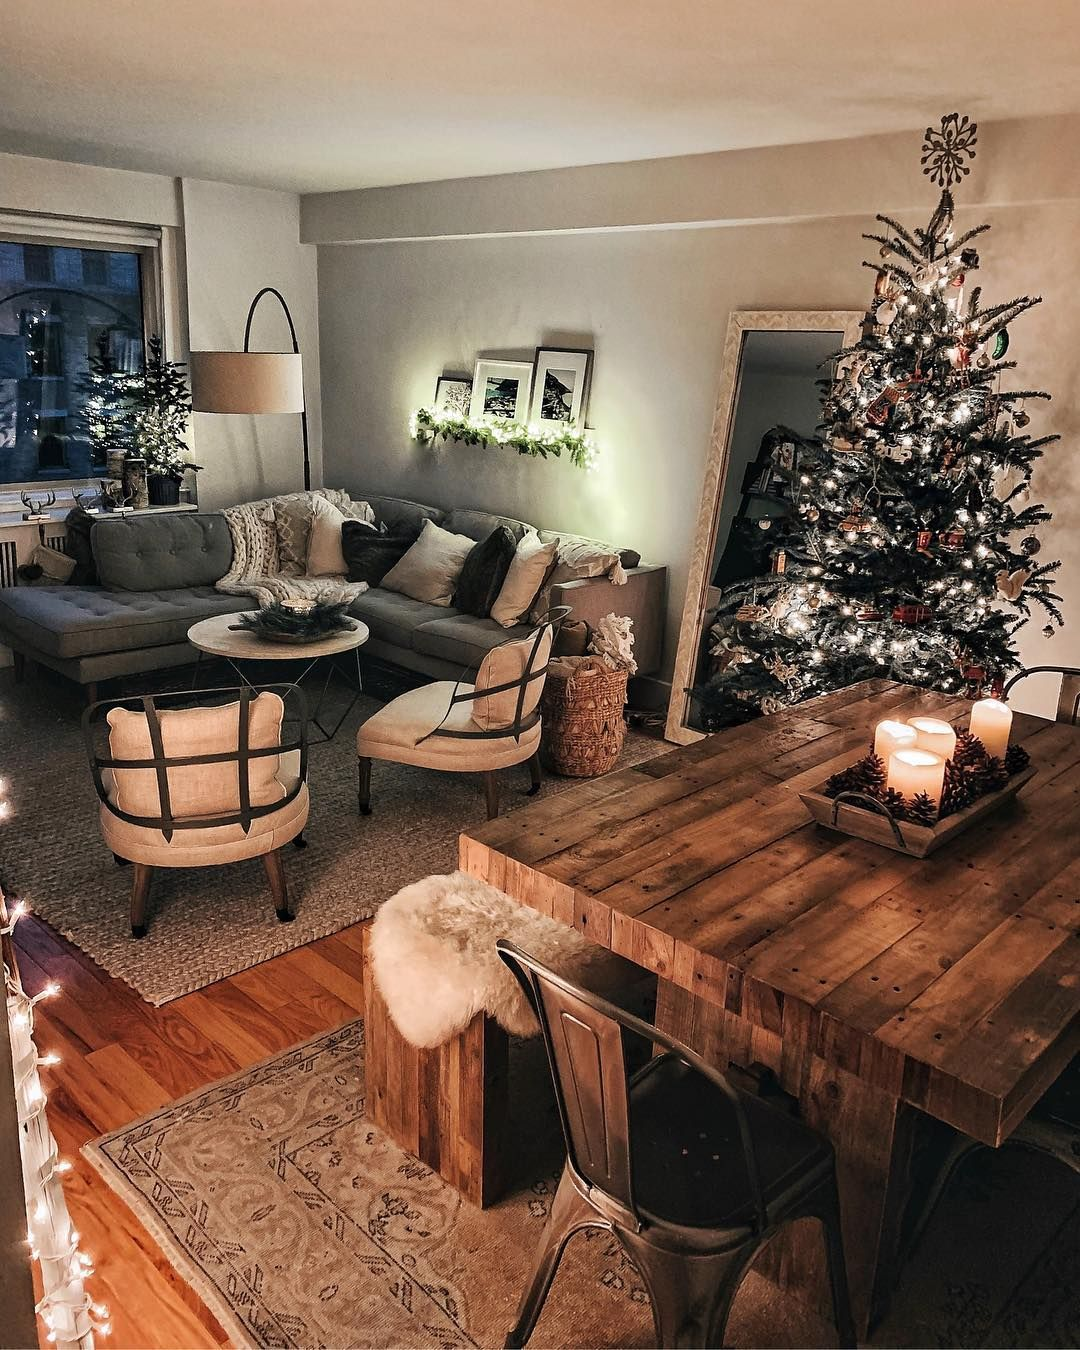 Living Room Inspo First Apartment Decorating Christmas Decorations Living Room Small Apartment Living Room